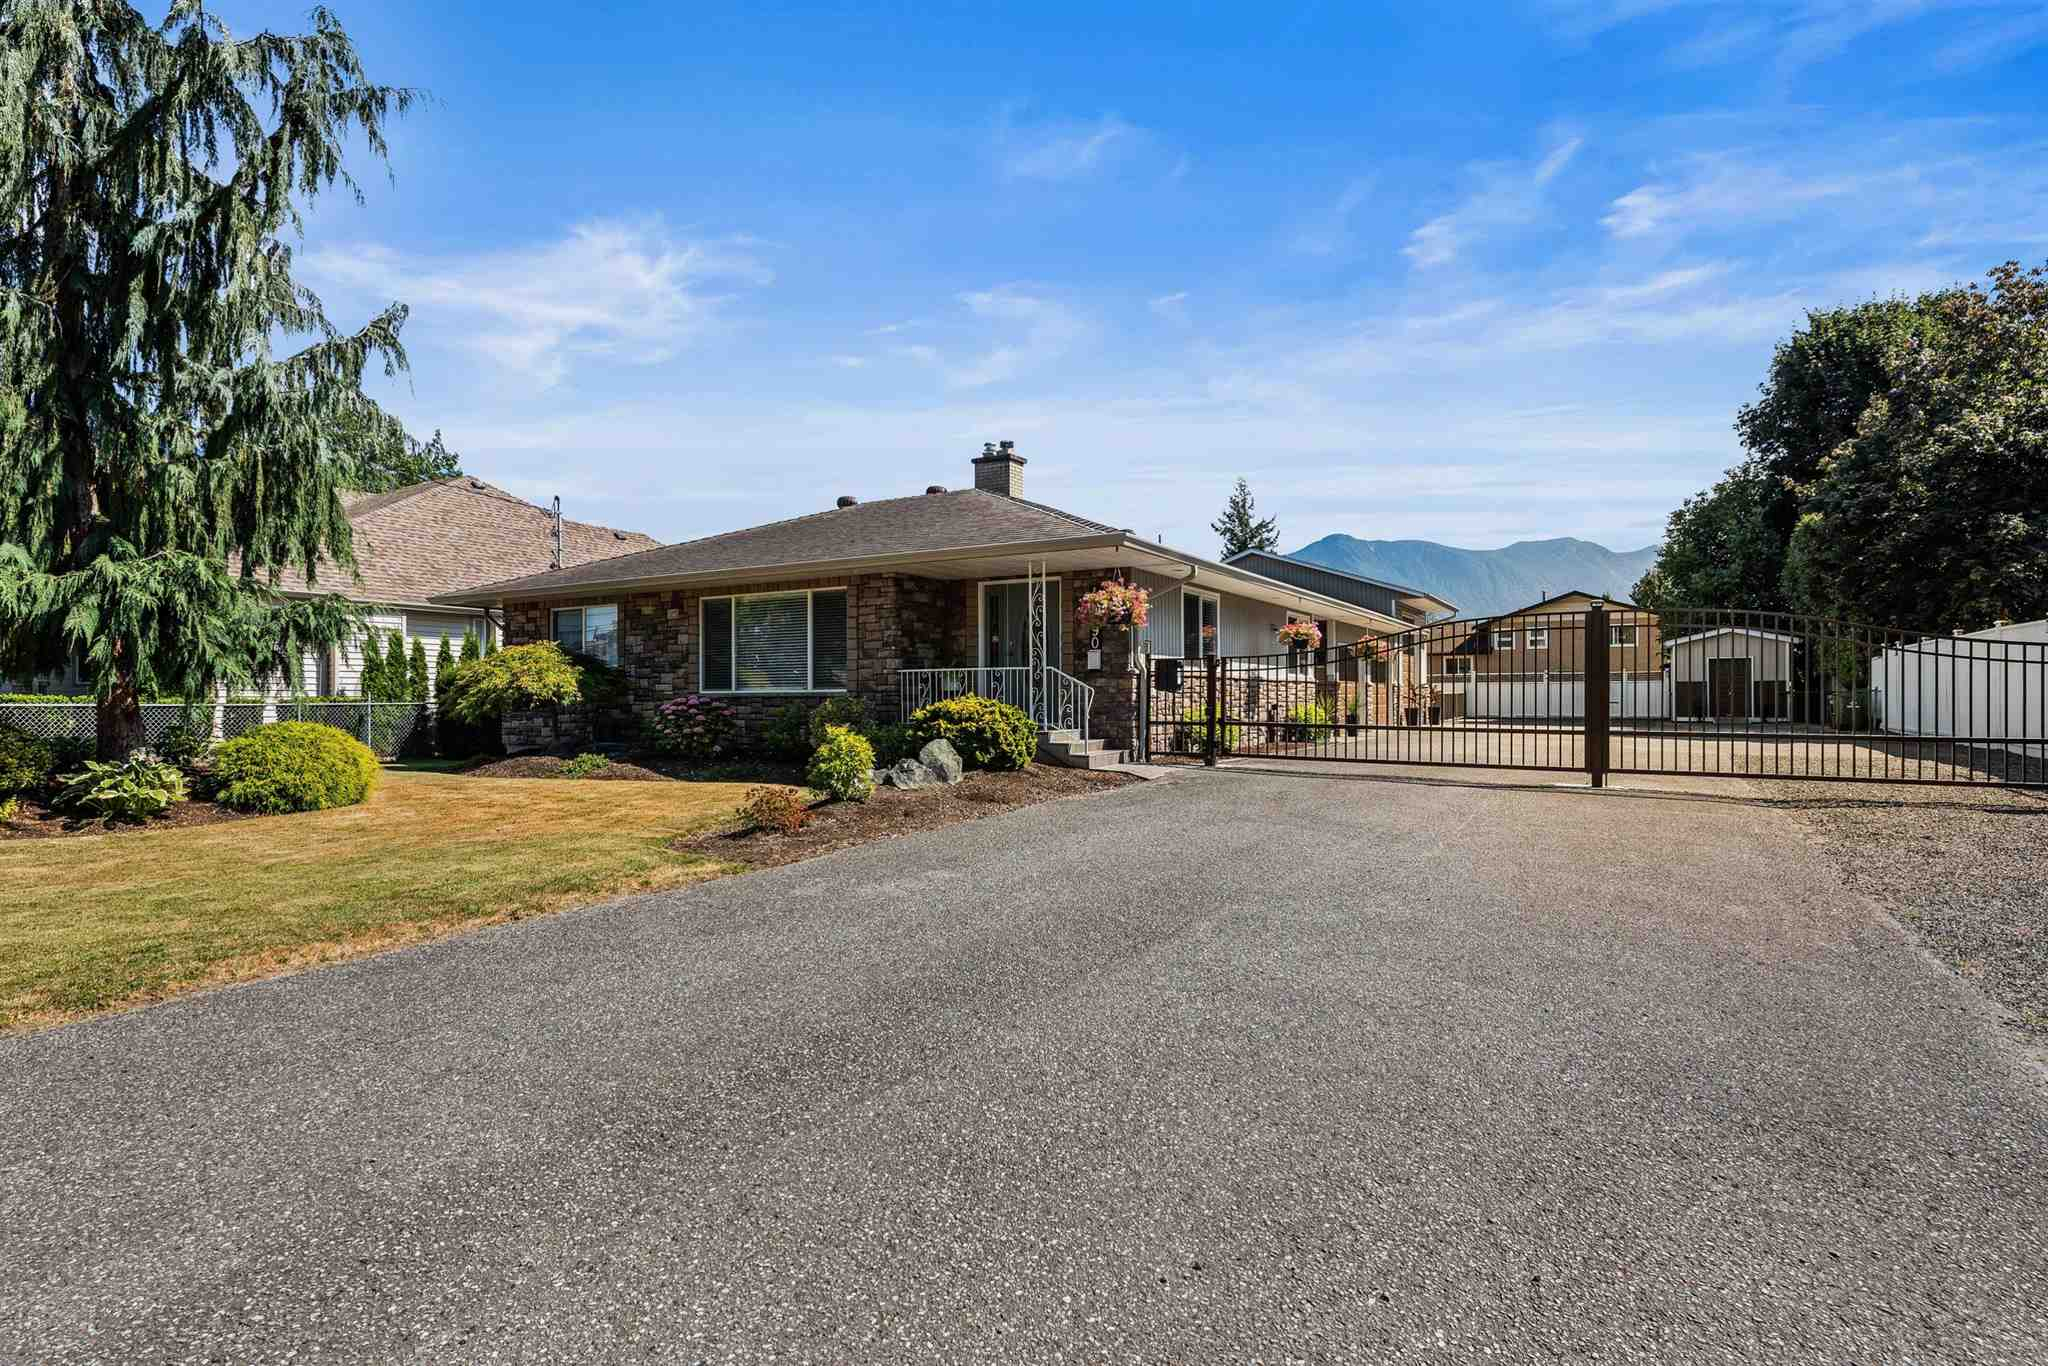 45490 SOUTH SUMAS ROAD - Sardis West Vedder Rd House/Single Family for sale, 5 Bedrooms (R2604697) - #1